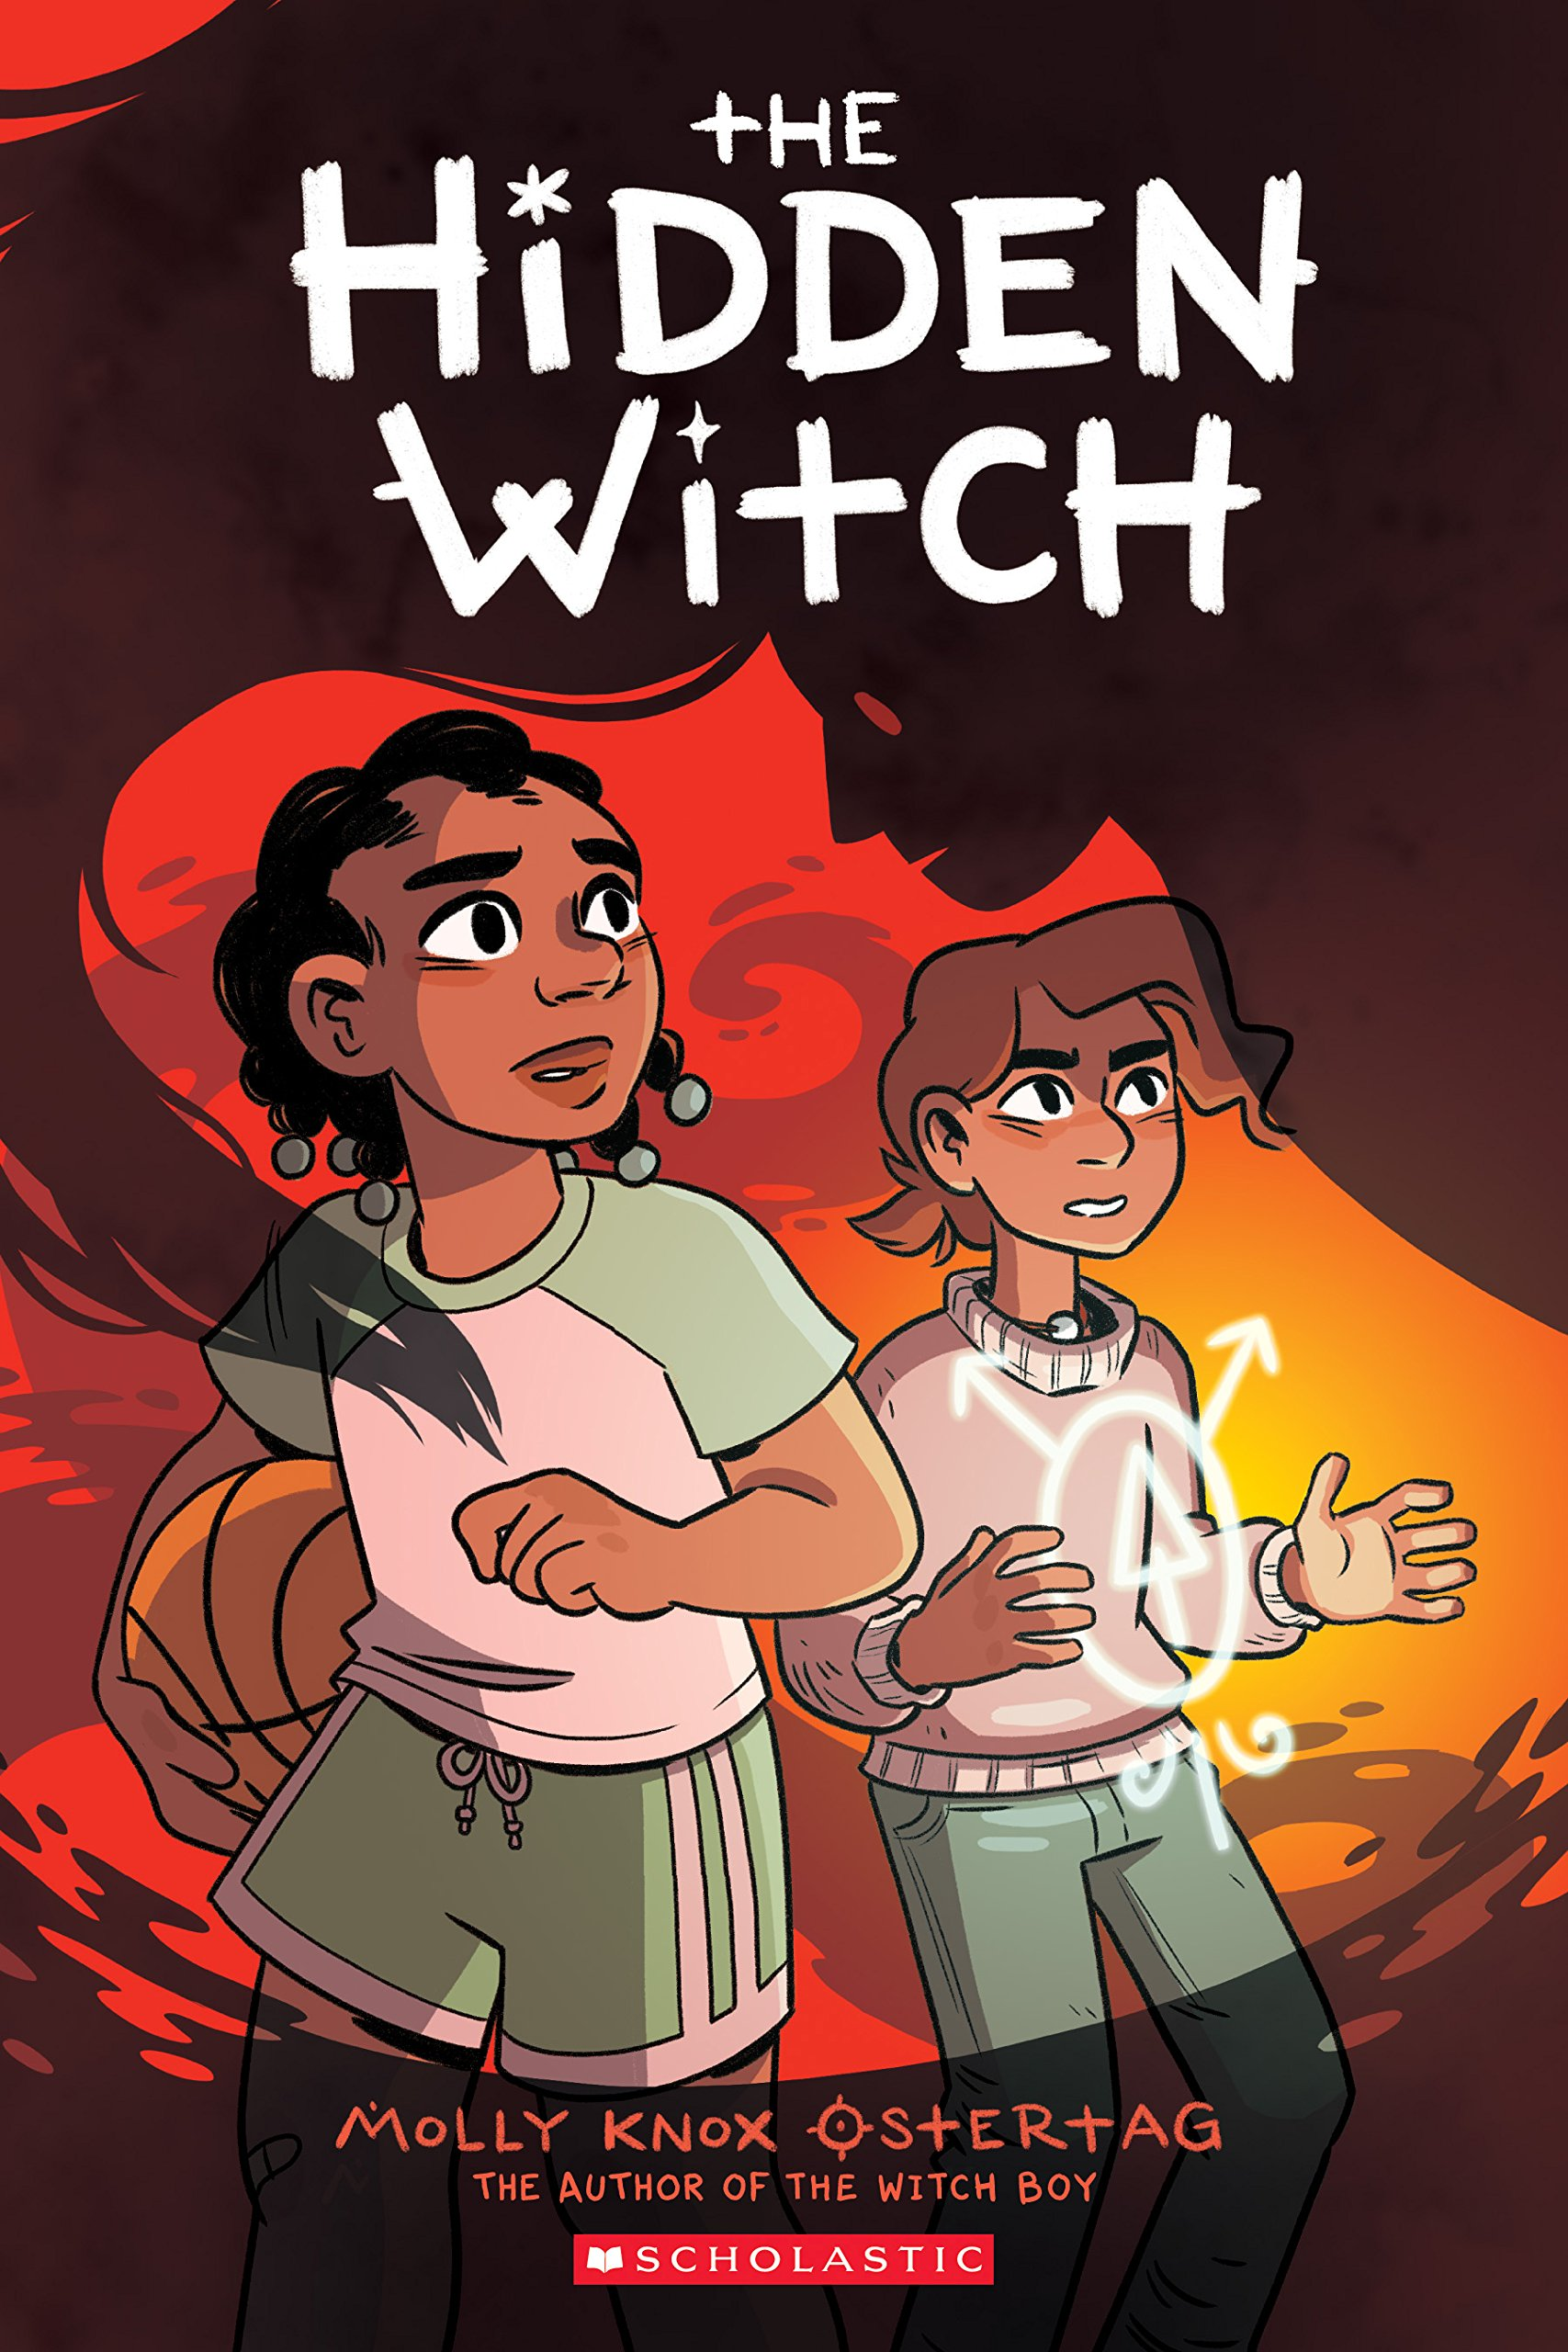 THE HIDDEN WITCH by Molly Ostertag (Scholastic, October 2018)